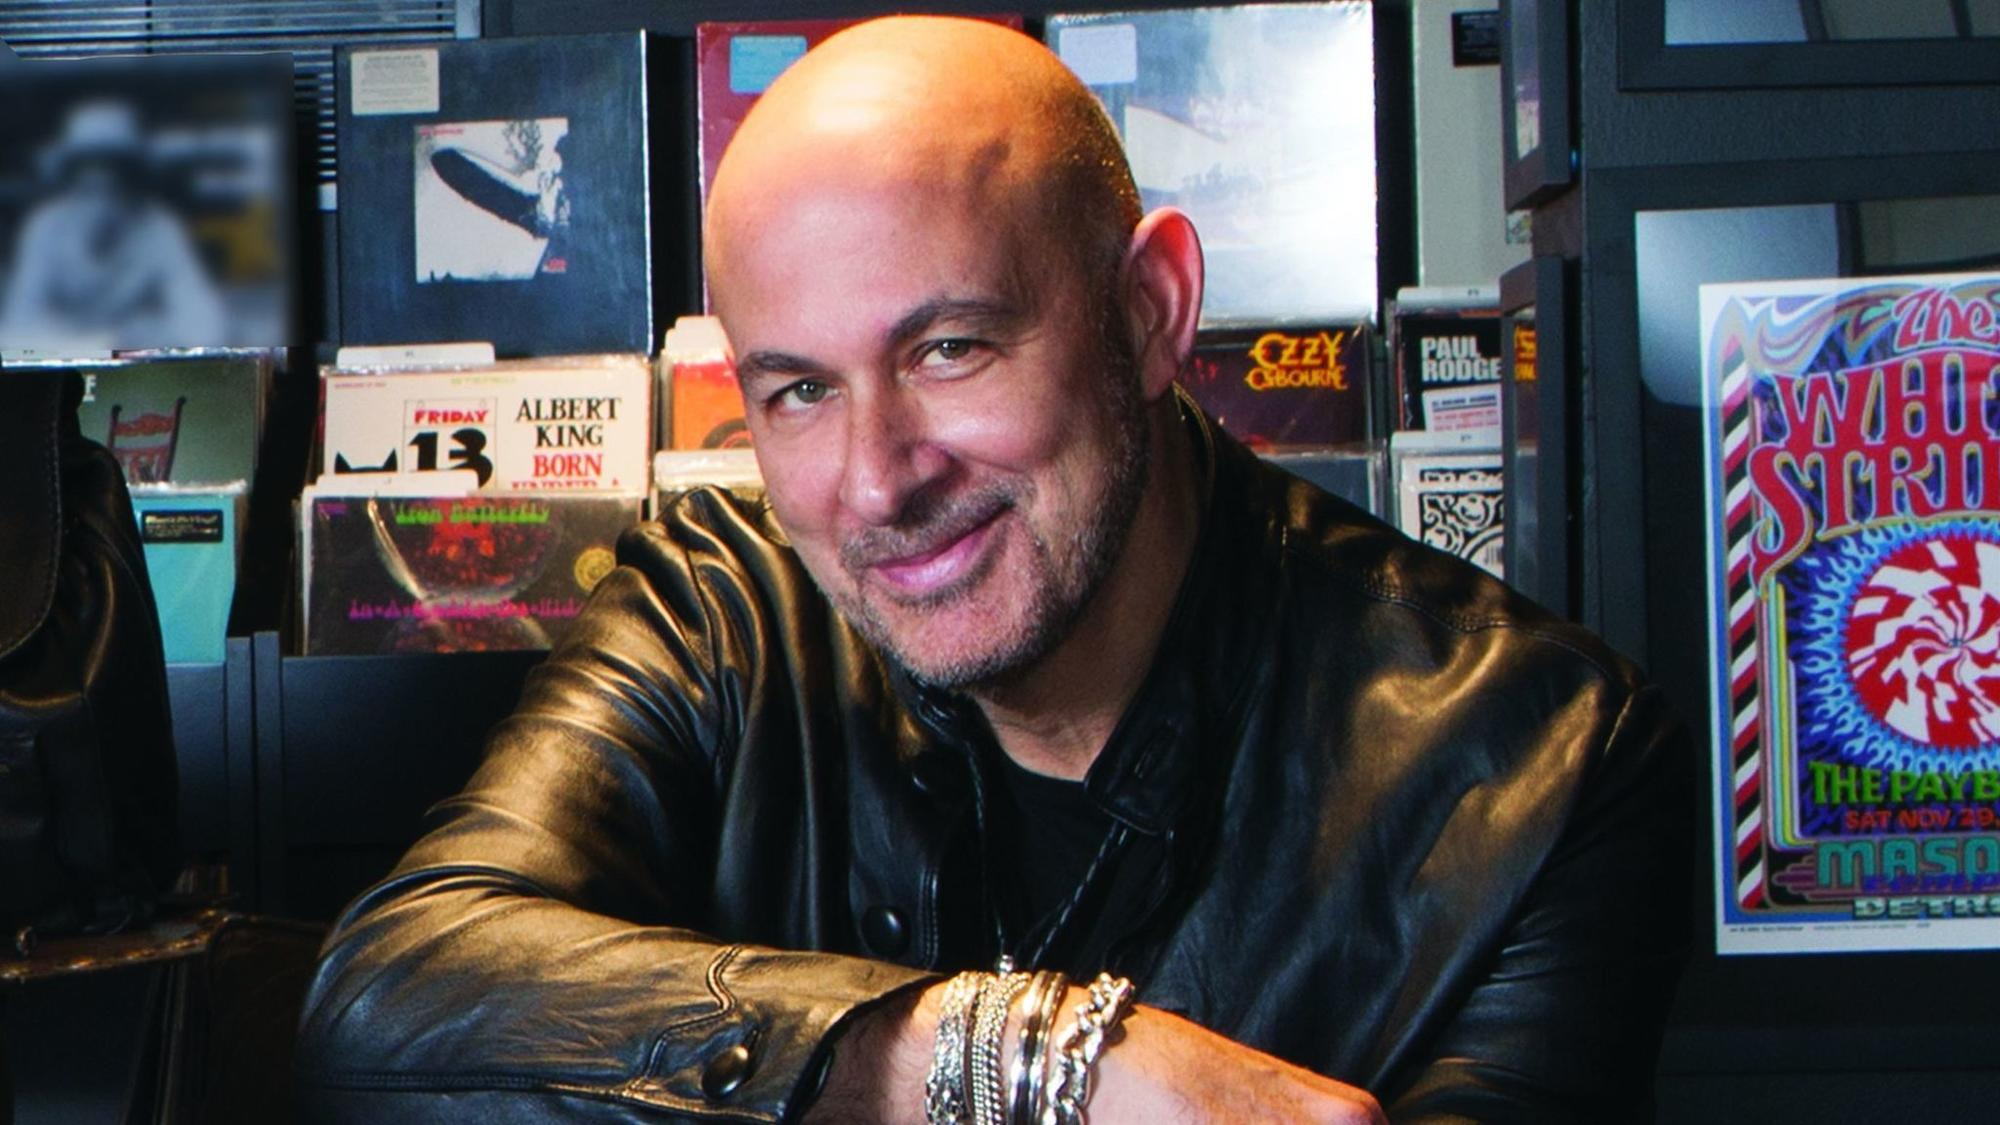 Designer John Varvatos reflects on how music and fashion allow him to remain 'Wild at Heart'